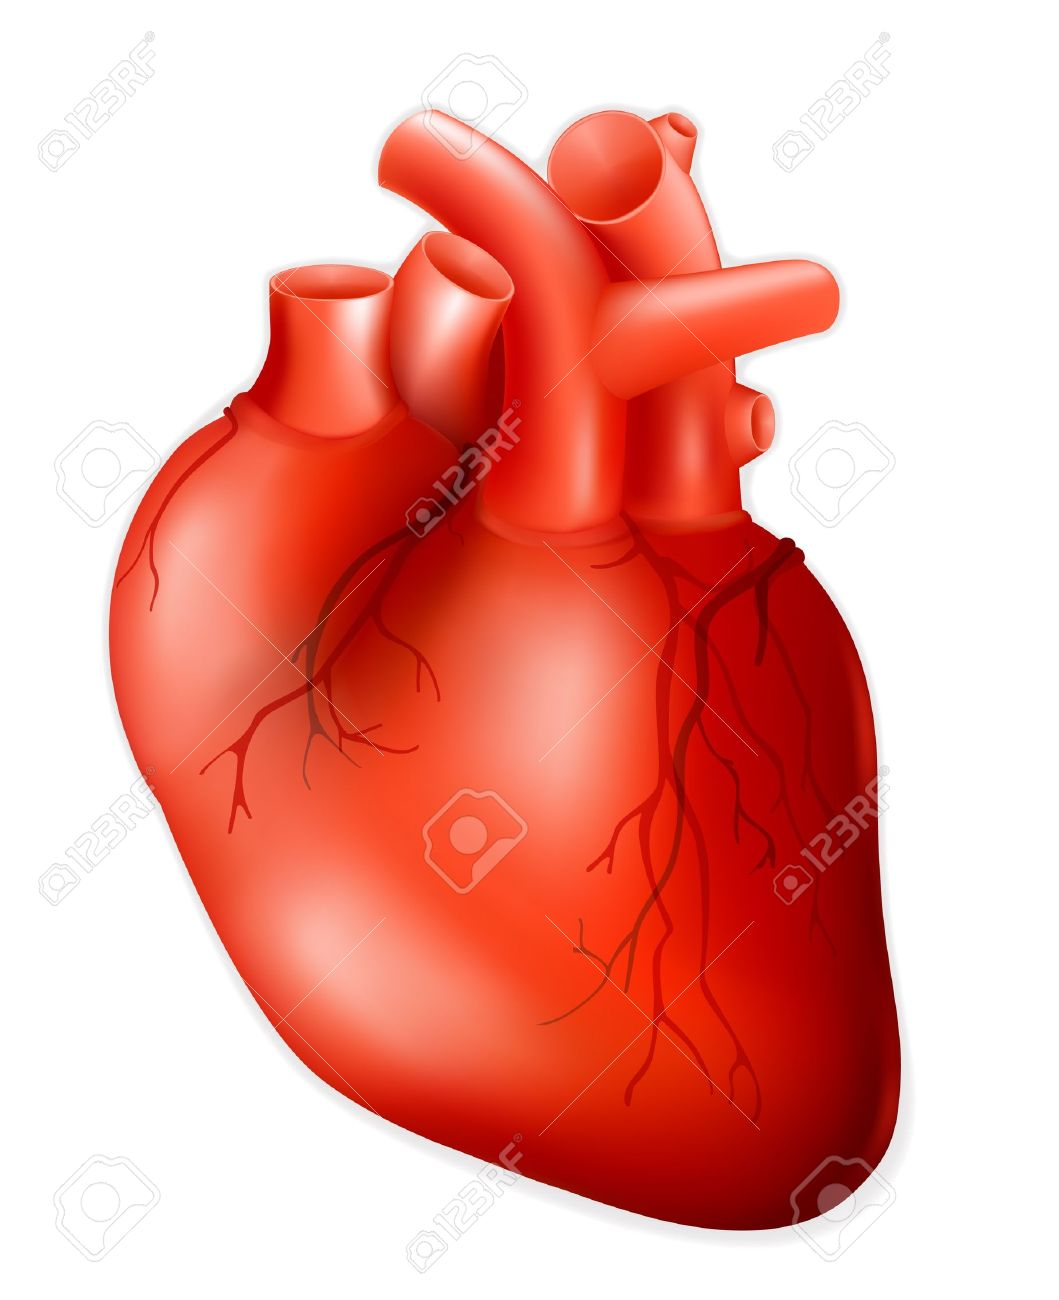 human heart stock photos & pictures. royalty free human heart, Human Body